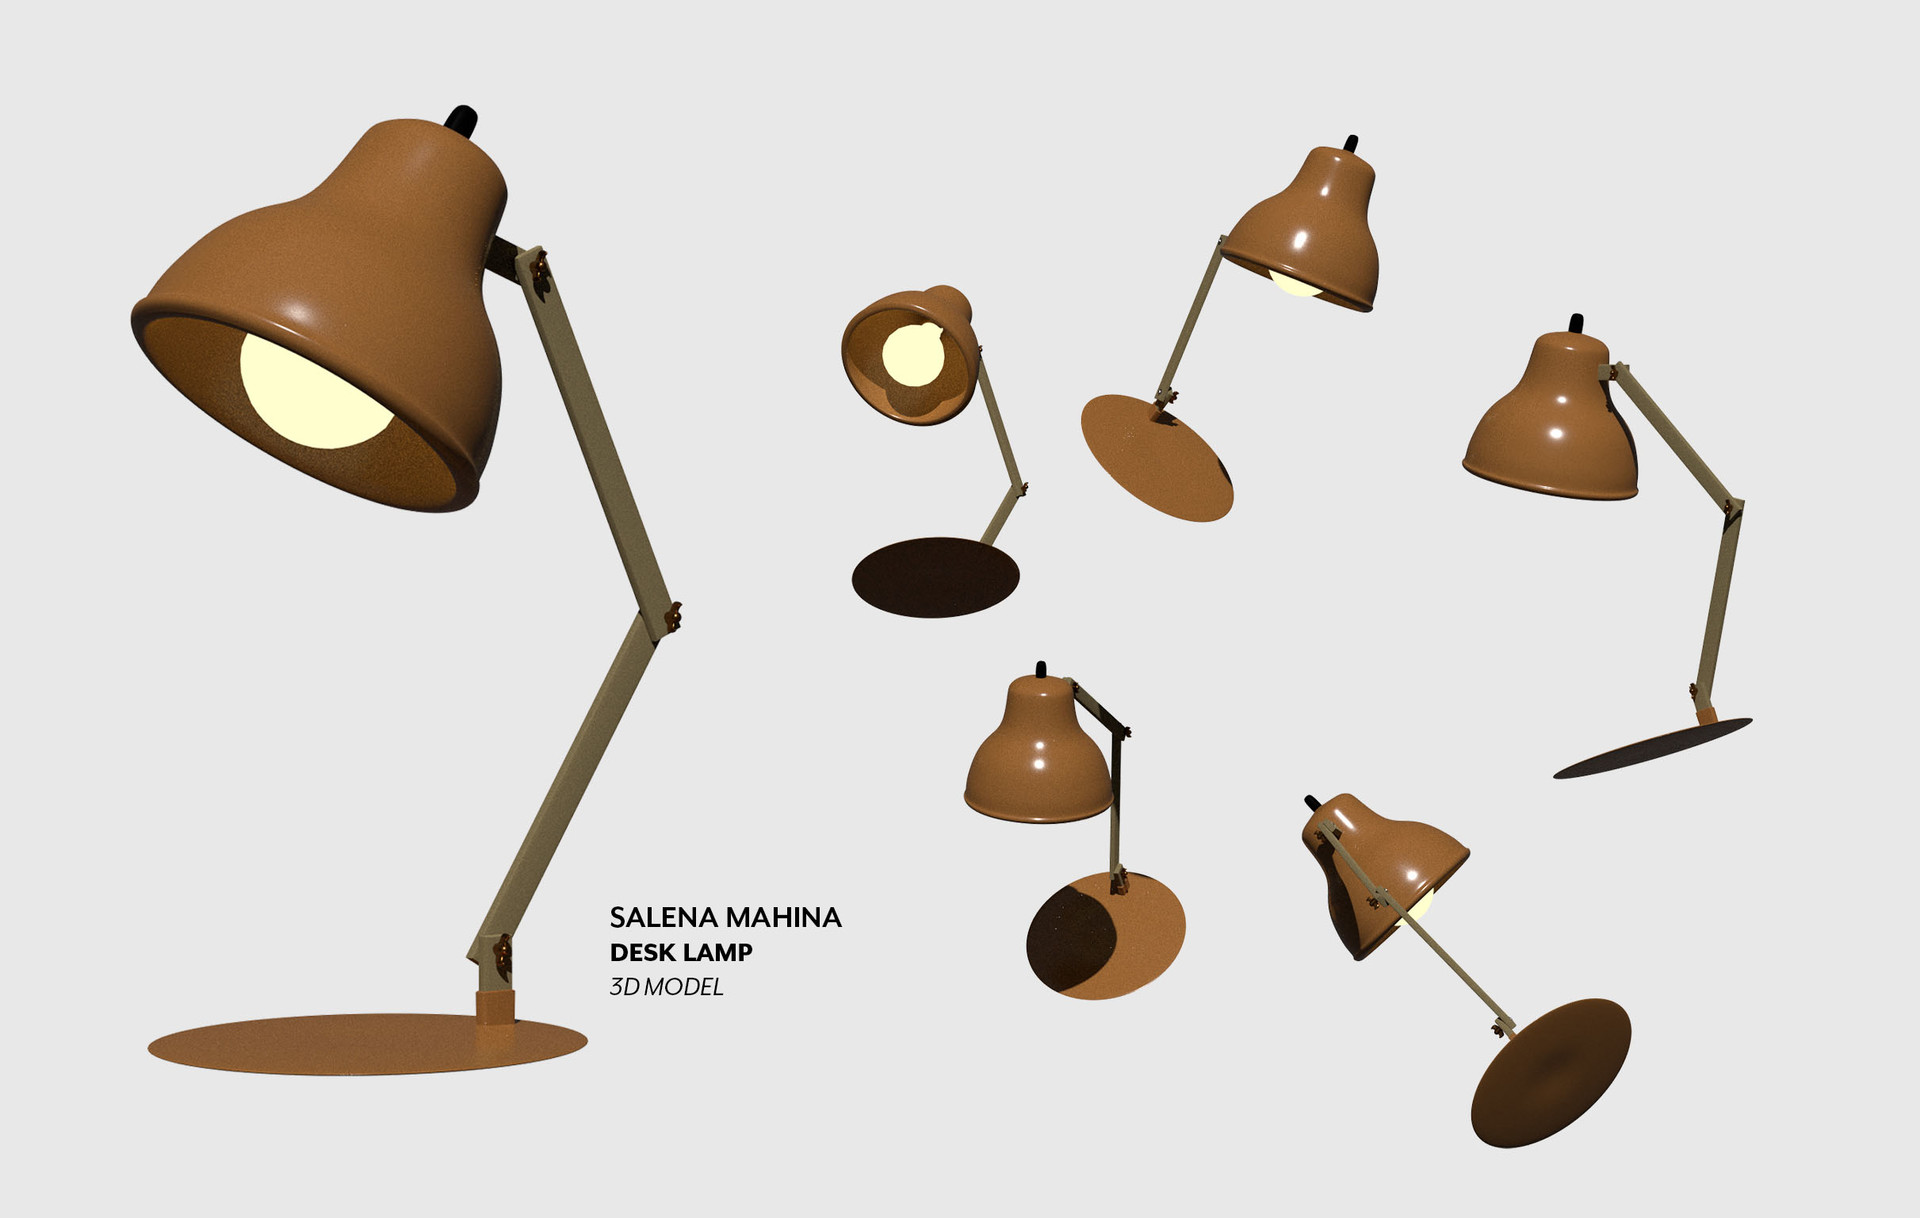 Salena mahina smahina lamp layout